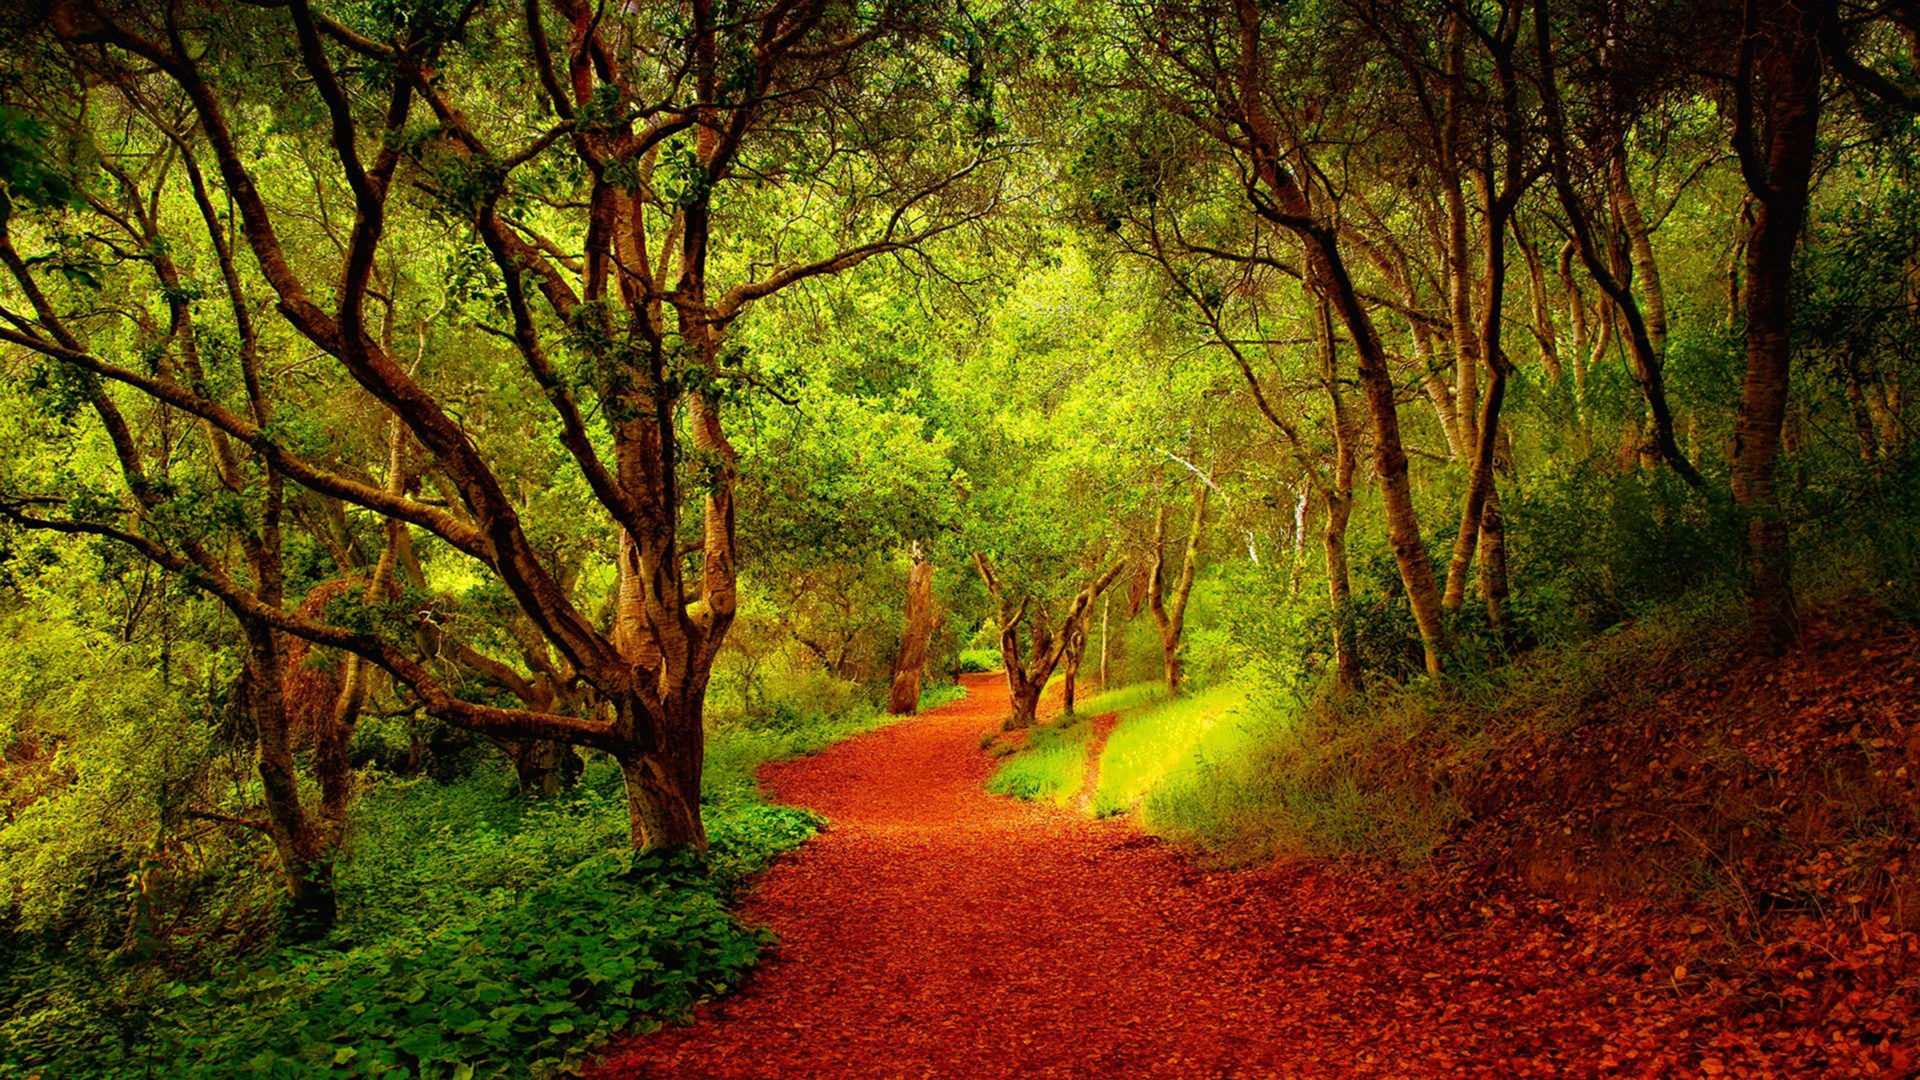 Iphone Lock Screen Wallpaper Slideshow Beautiful Forest Pathway 03846 Wallpapers13 Com